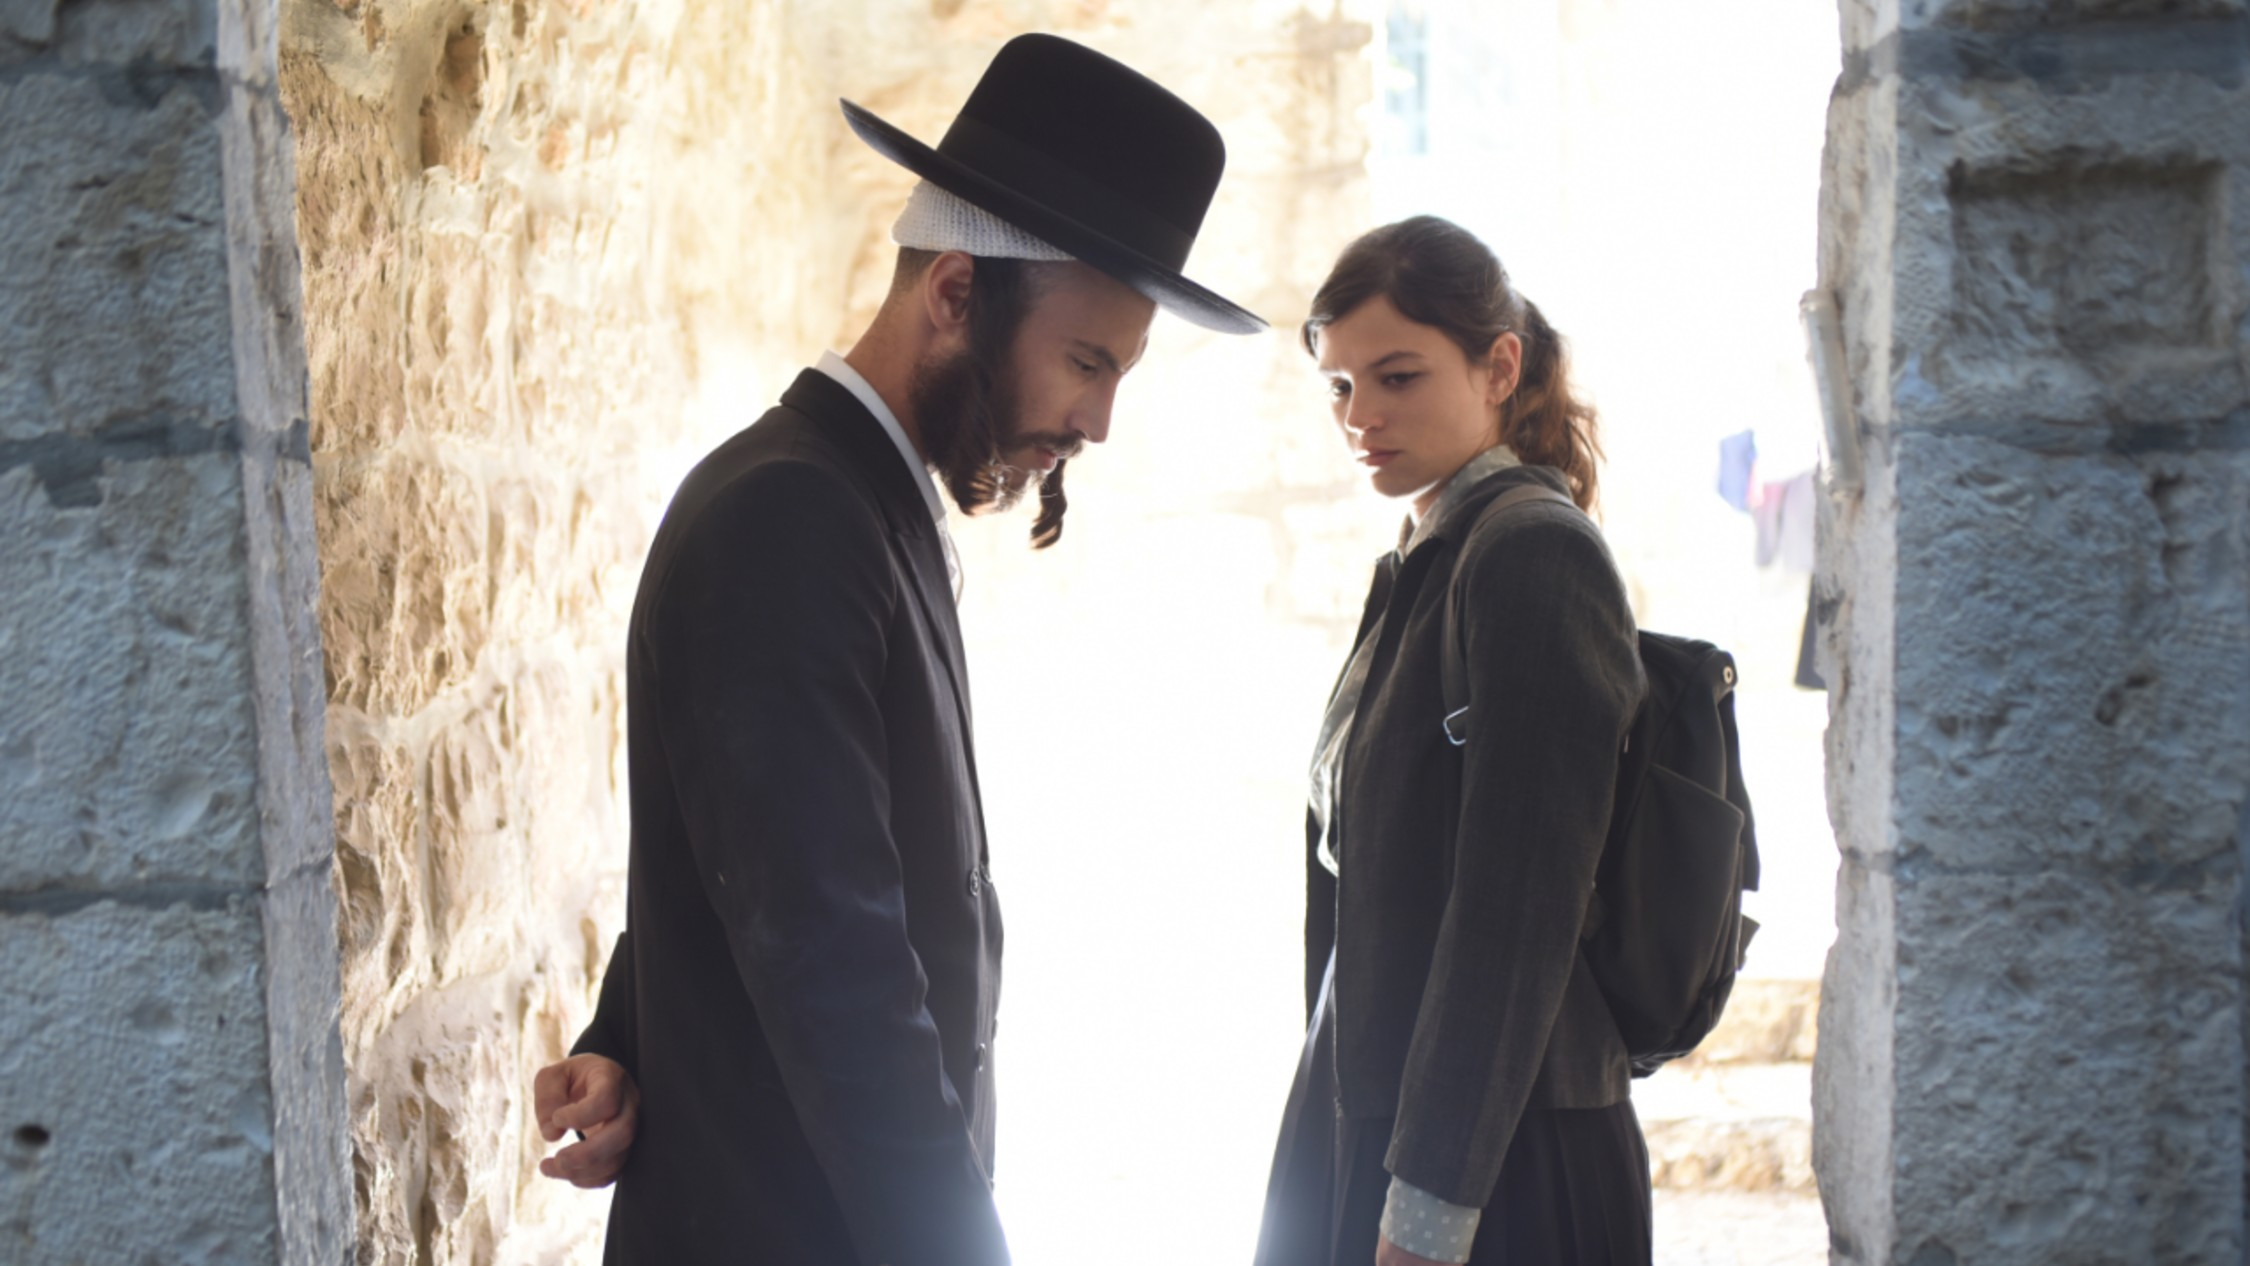 You can watch the Jewish International Film Festival at home